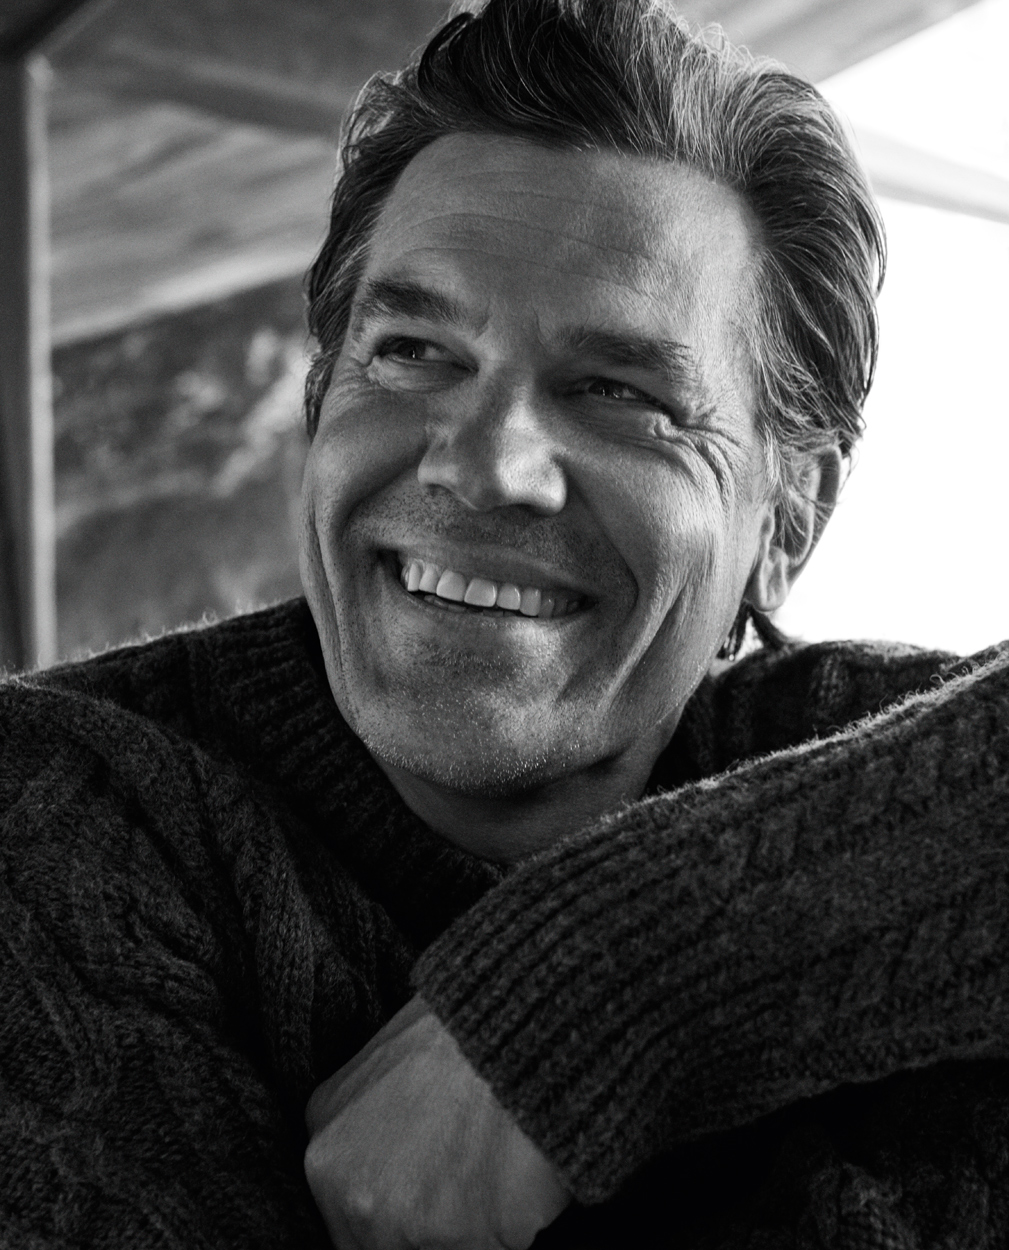 Celebrity Photographer Michael Schwartz: Josh Brolin for Icon magazine